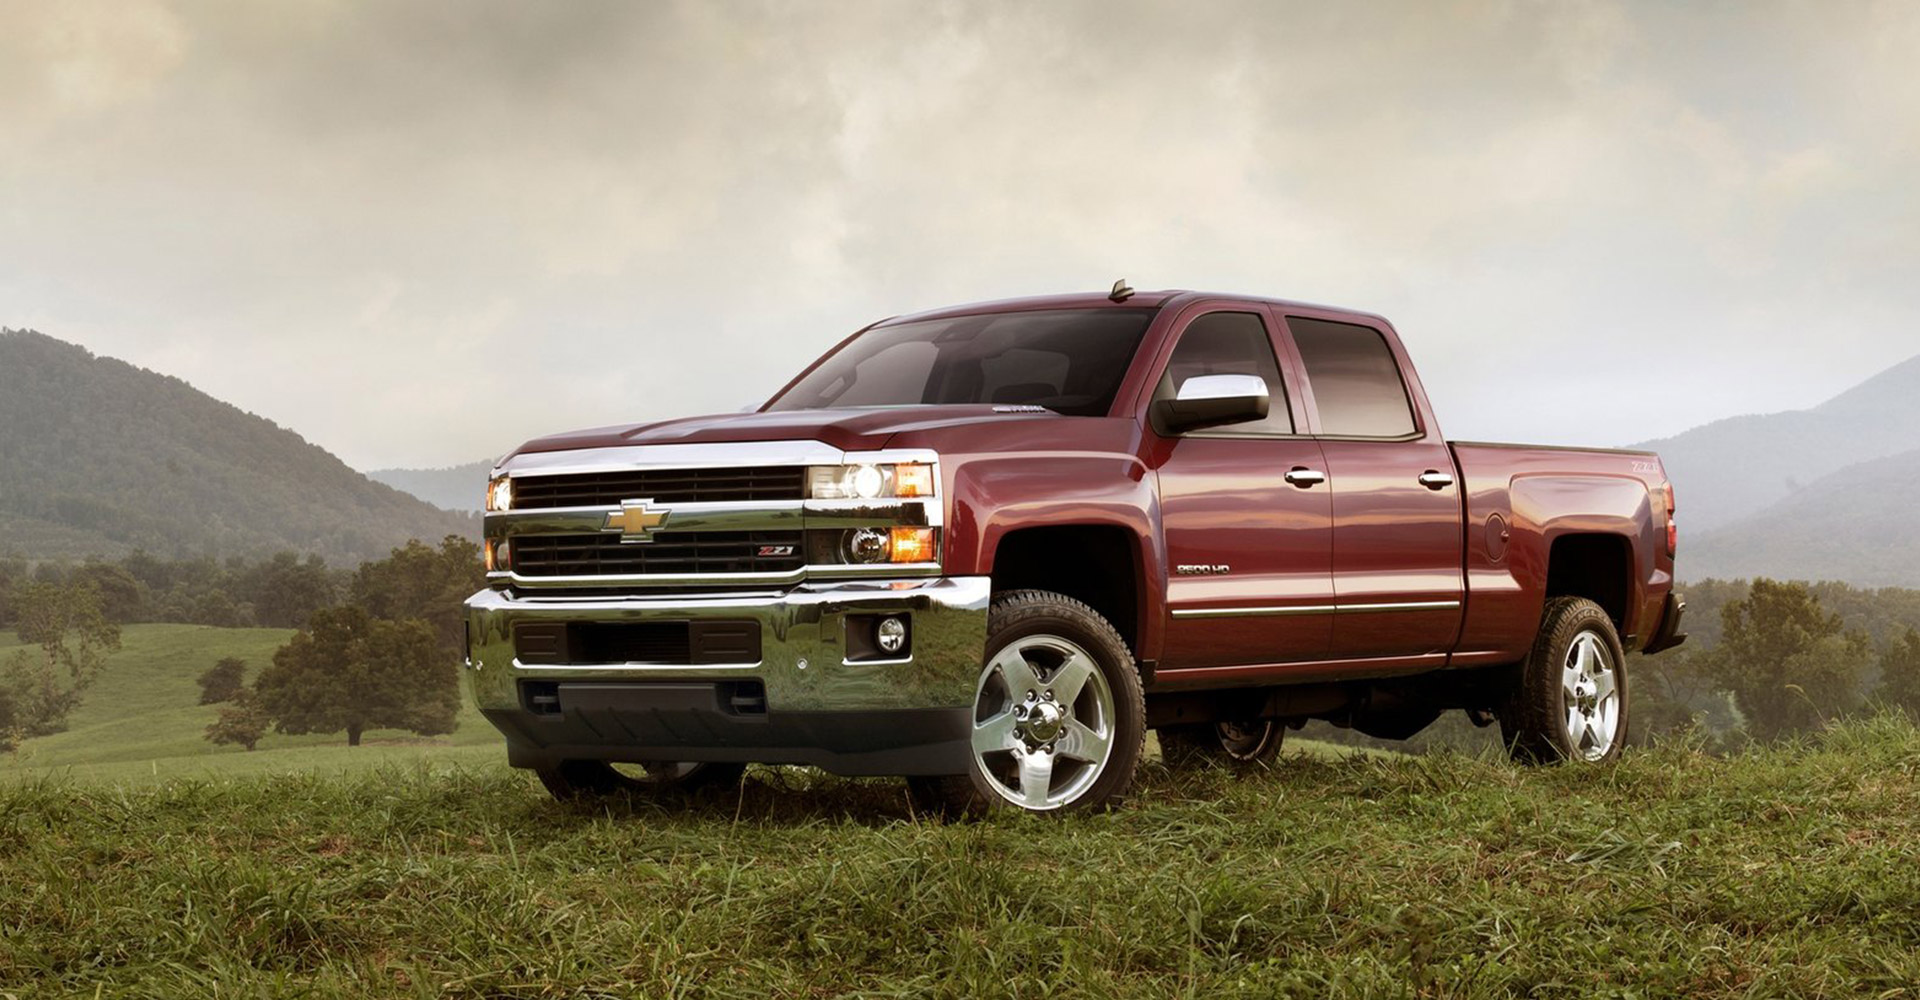 Used Trucks For Sale In San Antonio >> Used Cars San Antonio Tx Used Cars Trucks Tx Stone Oak